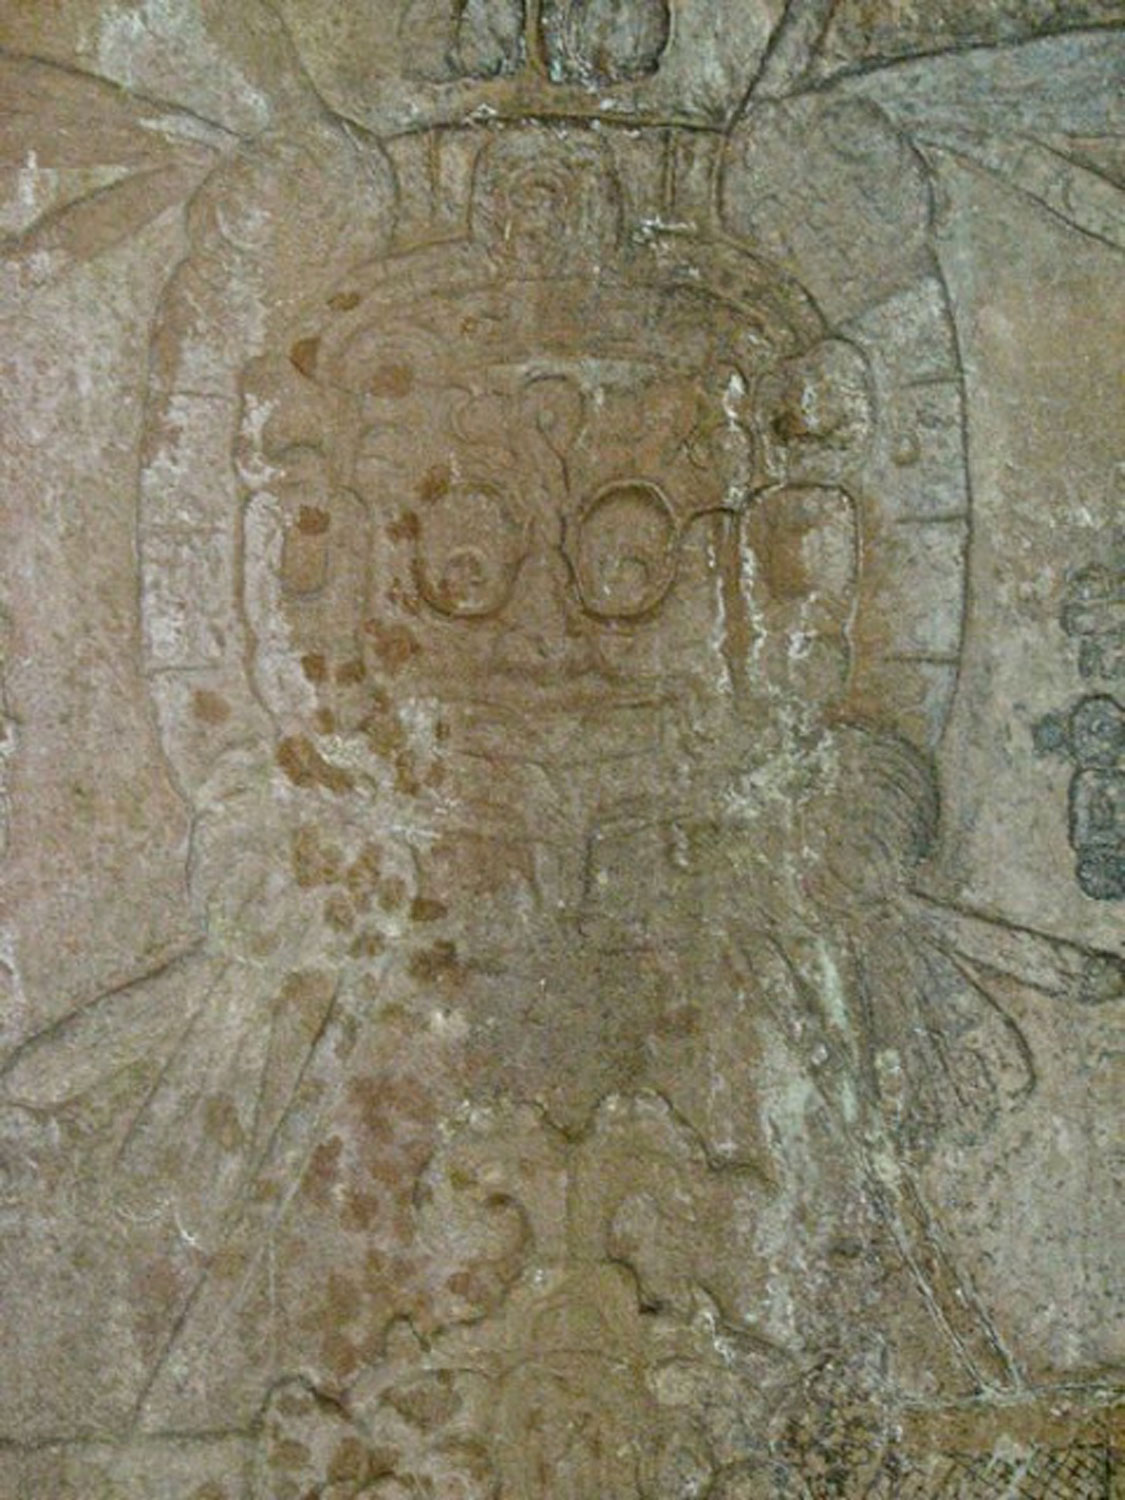 Chac, god of rain, at the Temple of the Cross.